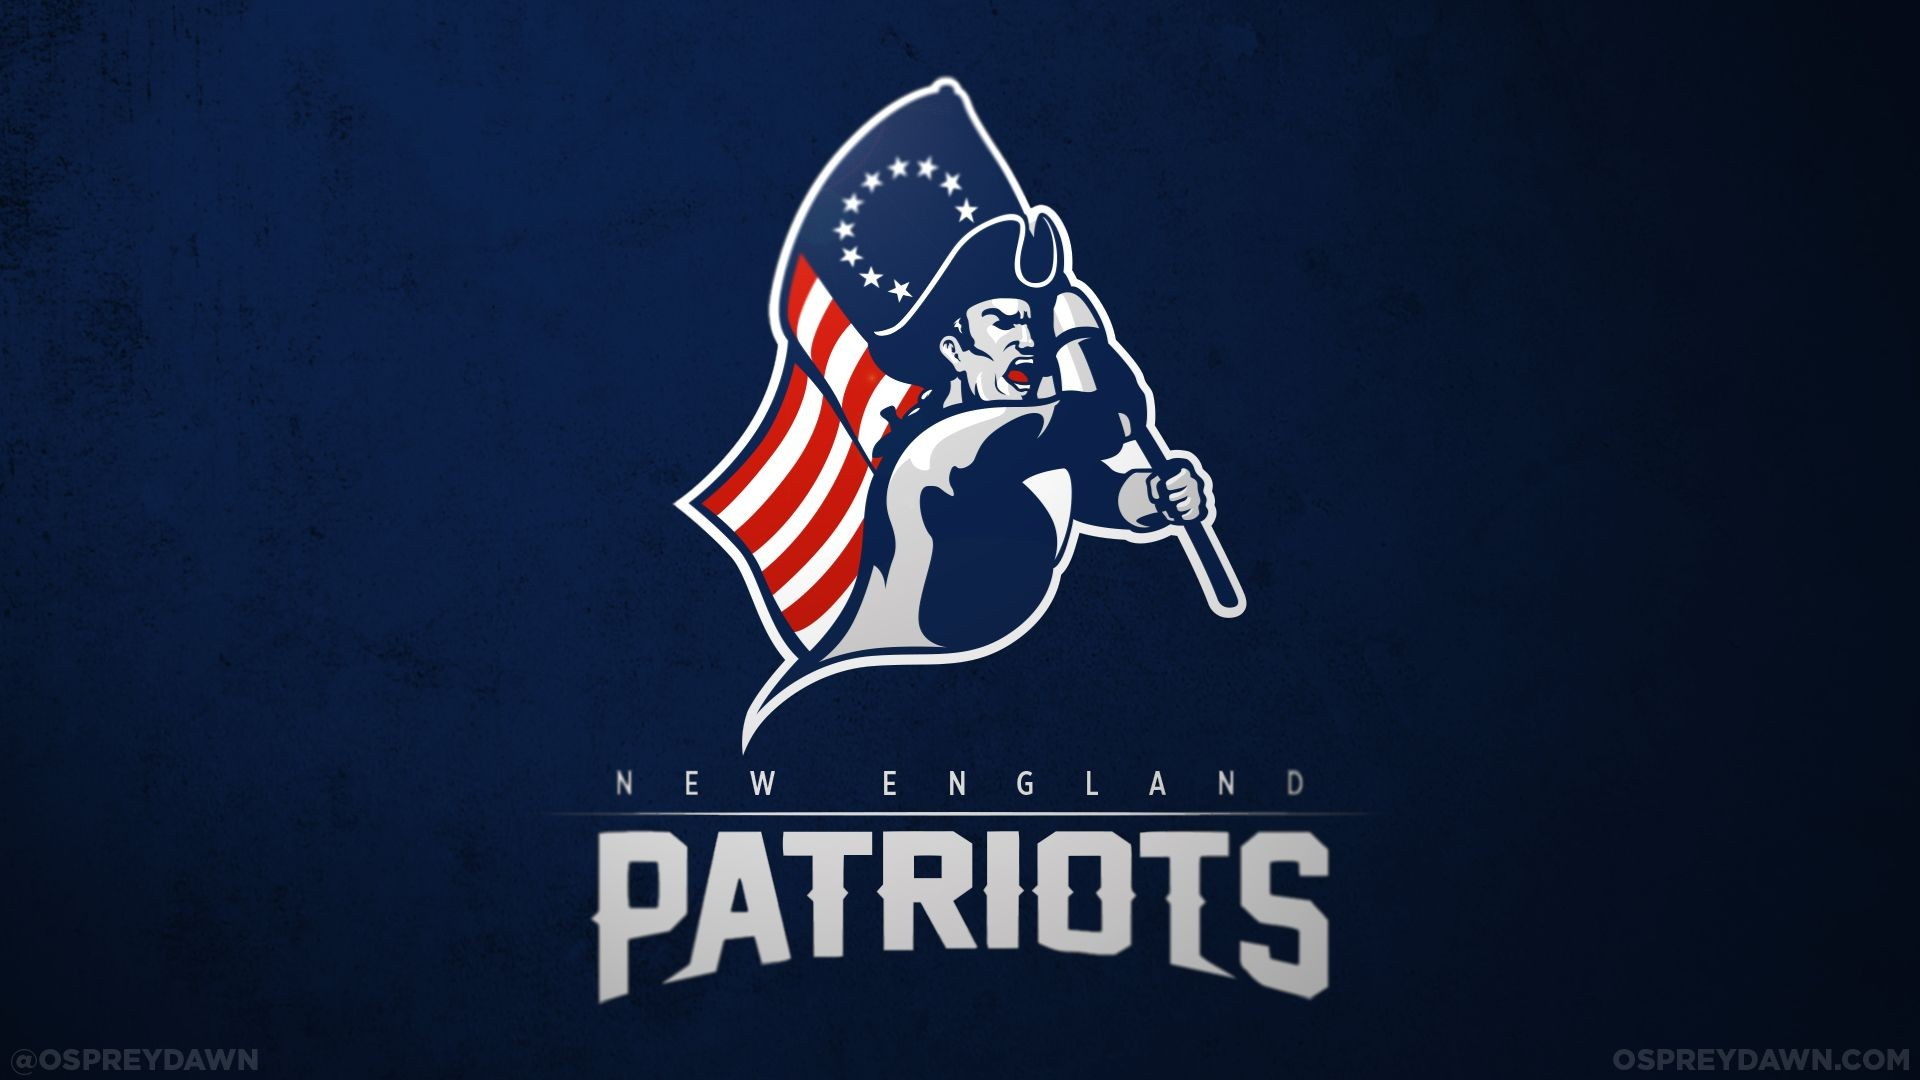 New England Patriots Wallpaper 1 Download Free High Resolution